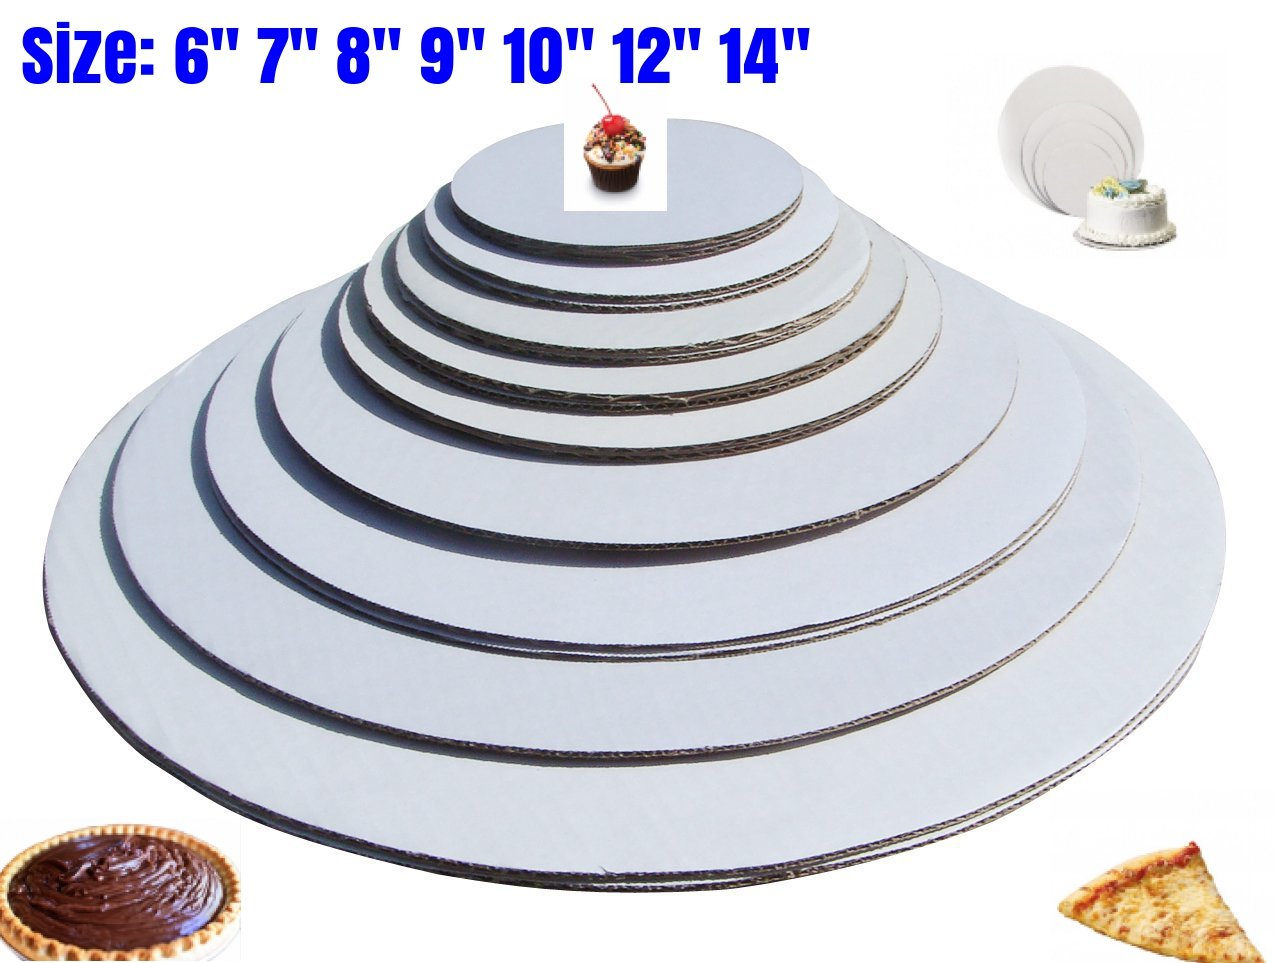 "The Bakers Pantry - cake circles-, Sturdy White Corrugated Cardboard, 100% Food Safe (6"", 7:, 8"", 9"", 10"" 12"", 14""- 4 of Each)"